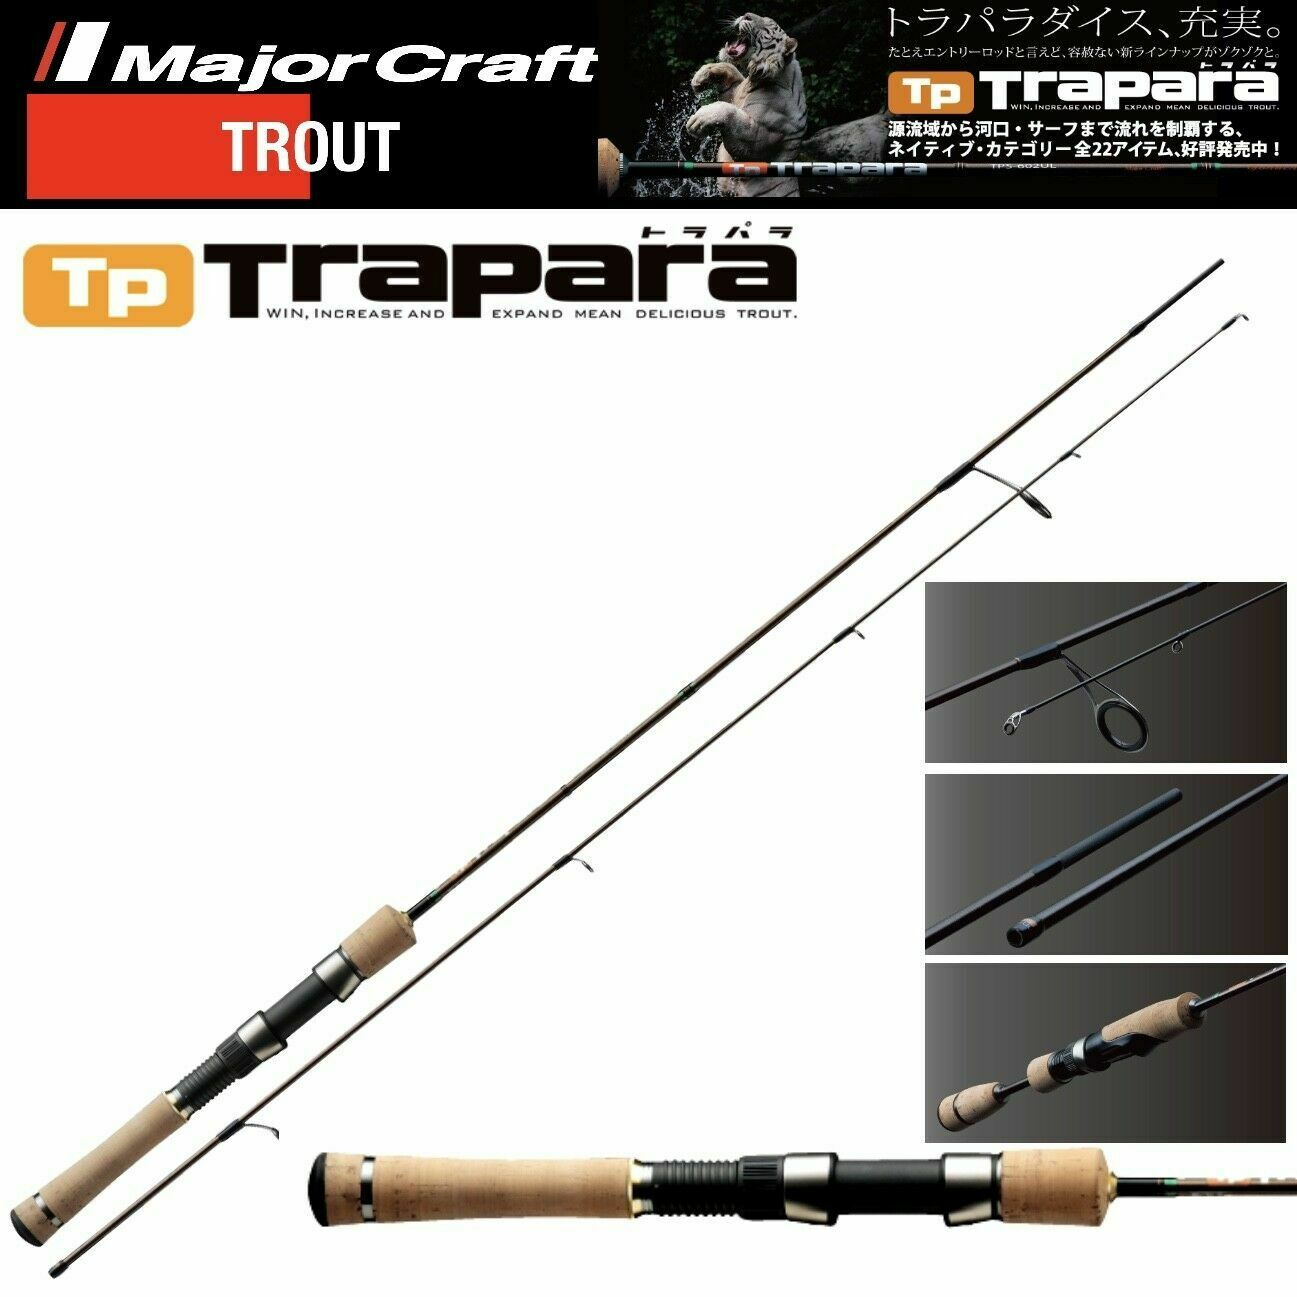 Major Craft Trucha Pesca Giratoria Caña Modelo Trapara